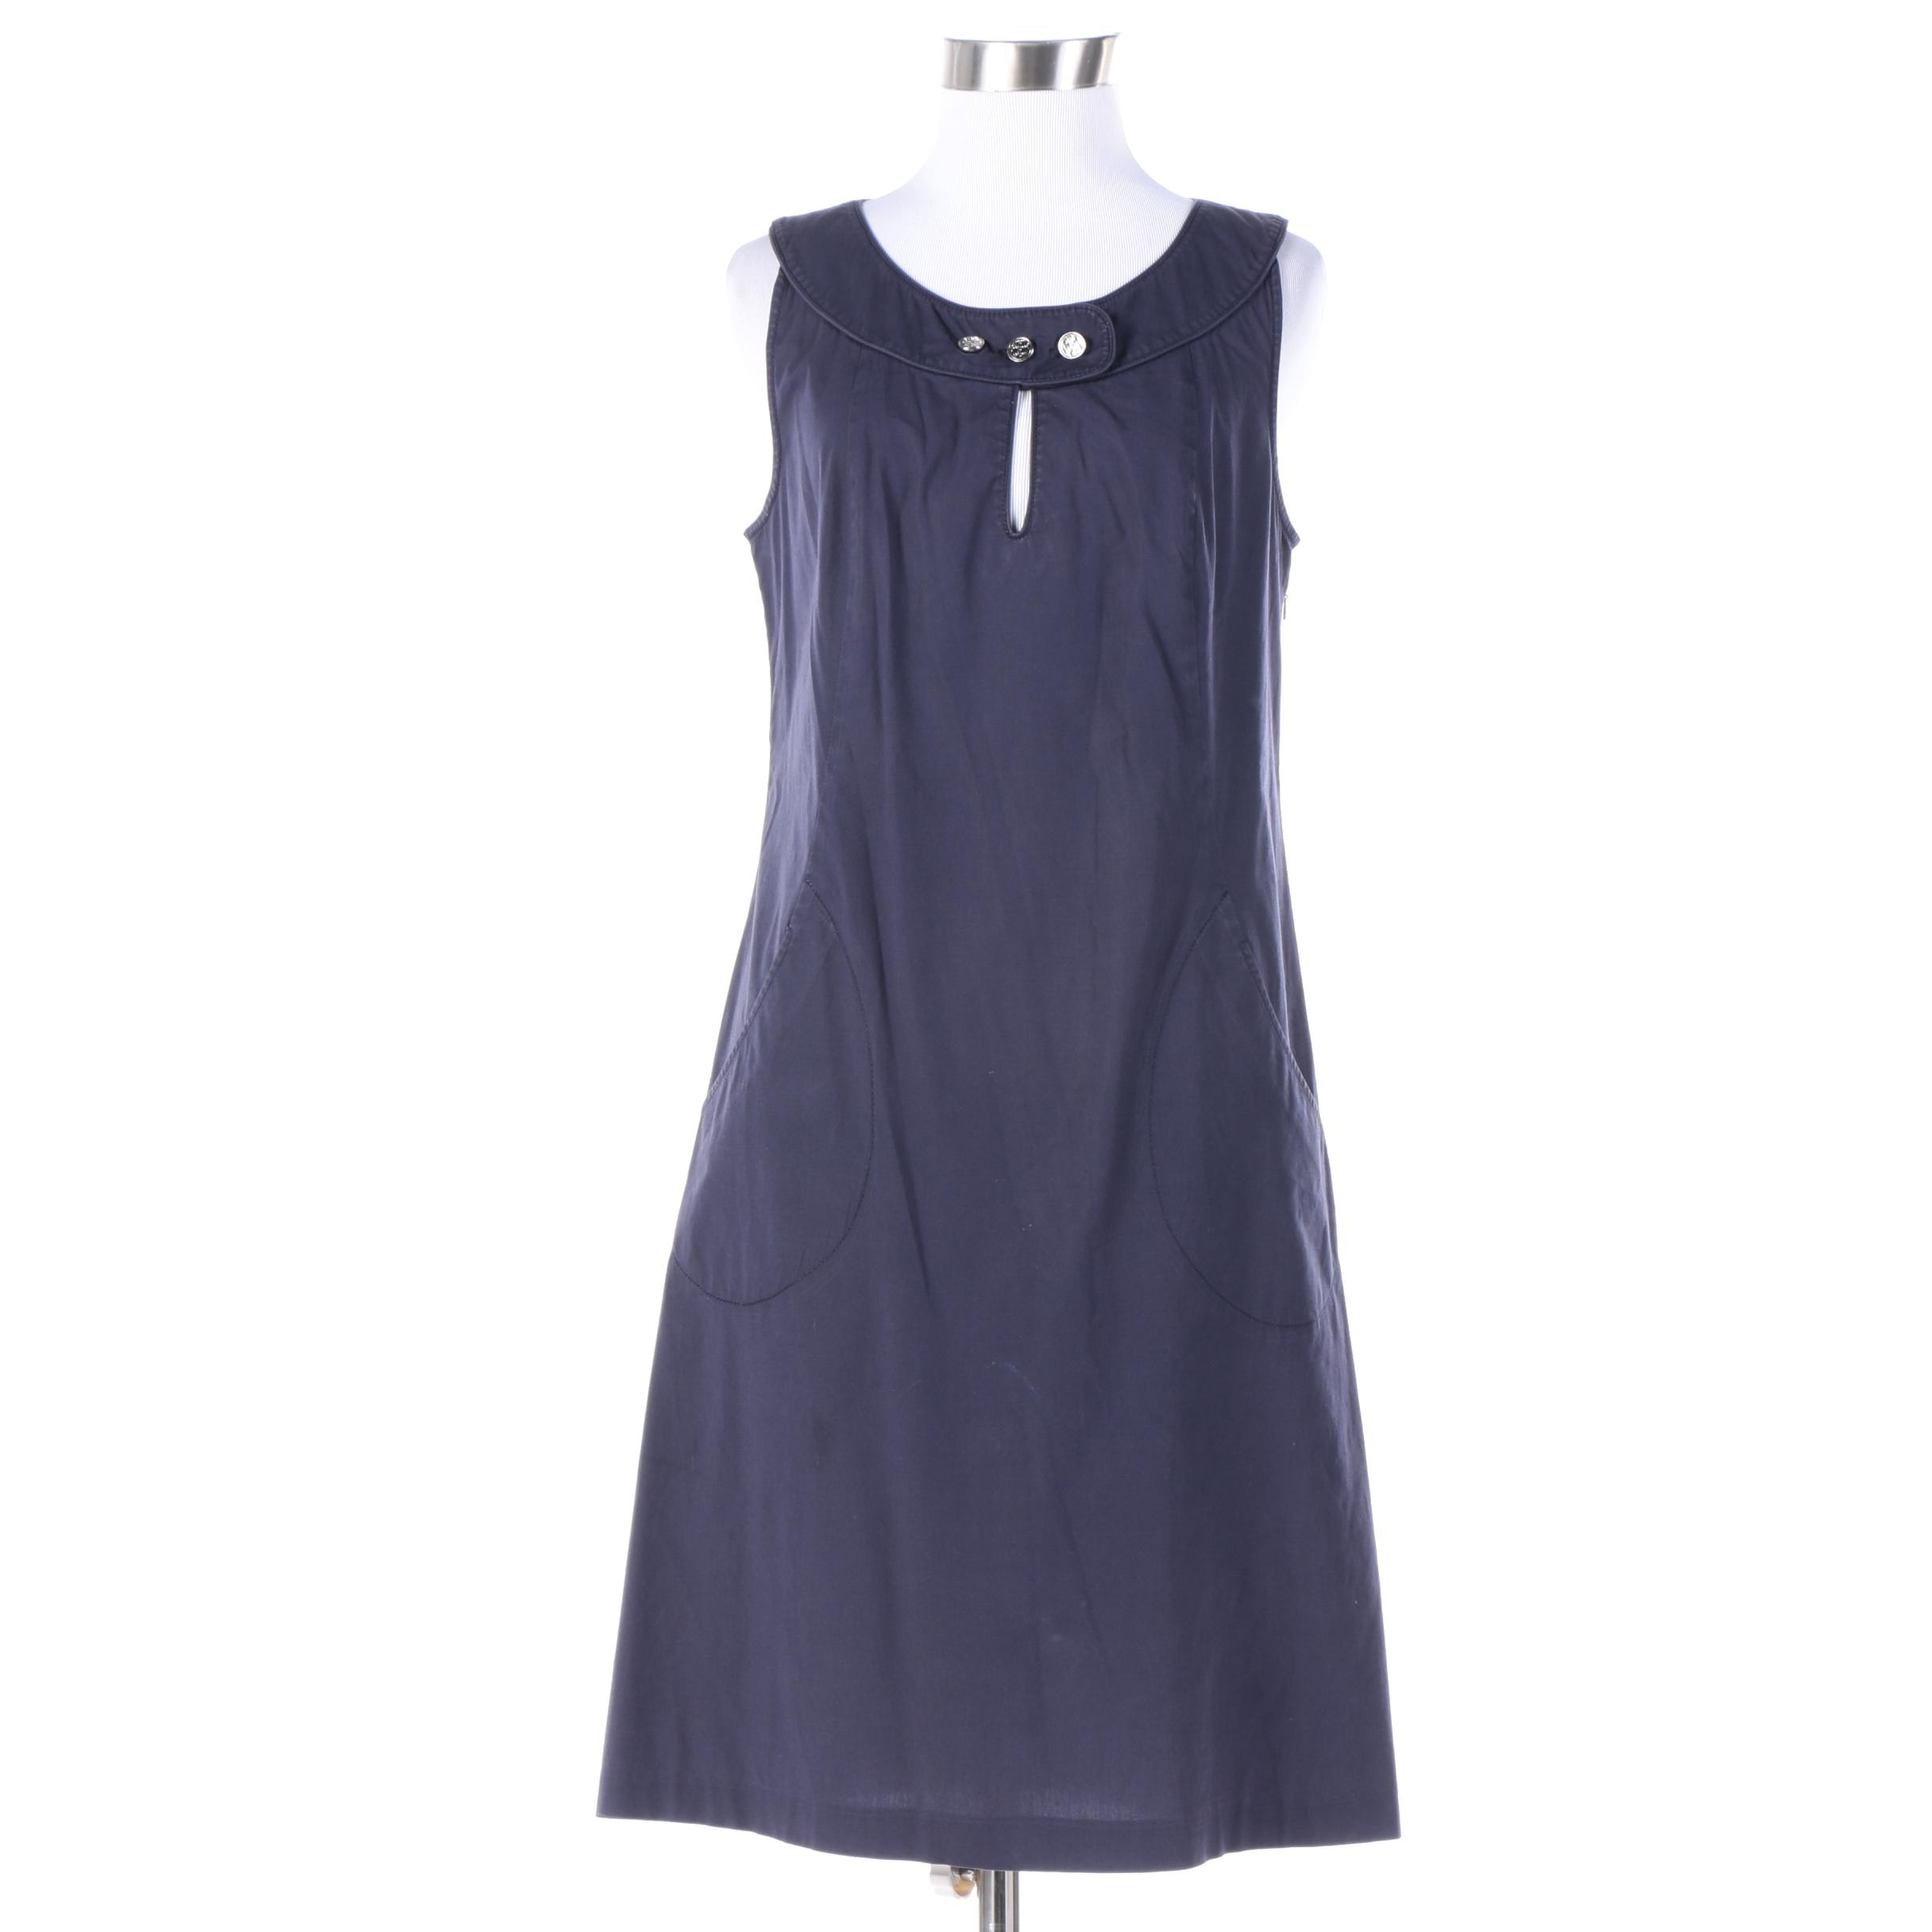 Tory Burch Blue Sleeveless Dress